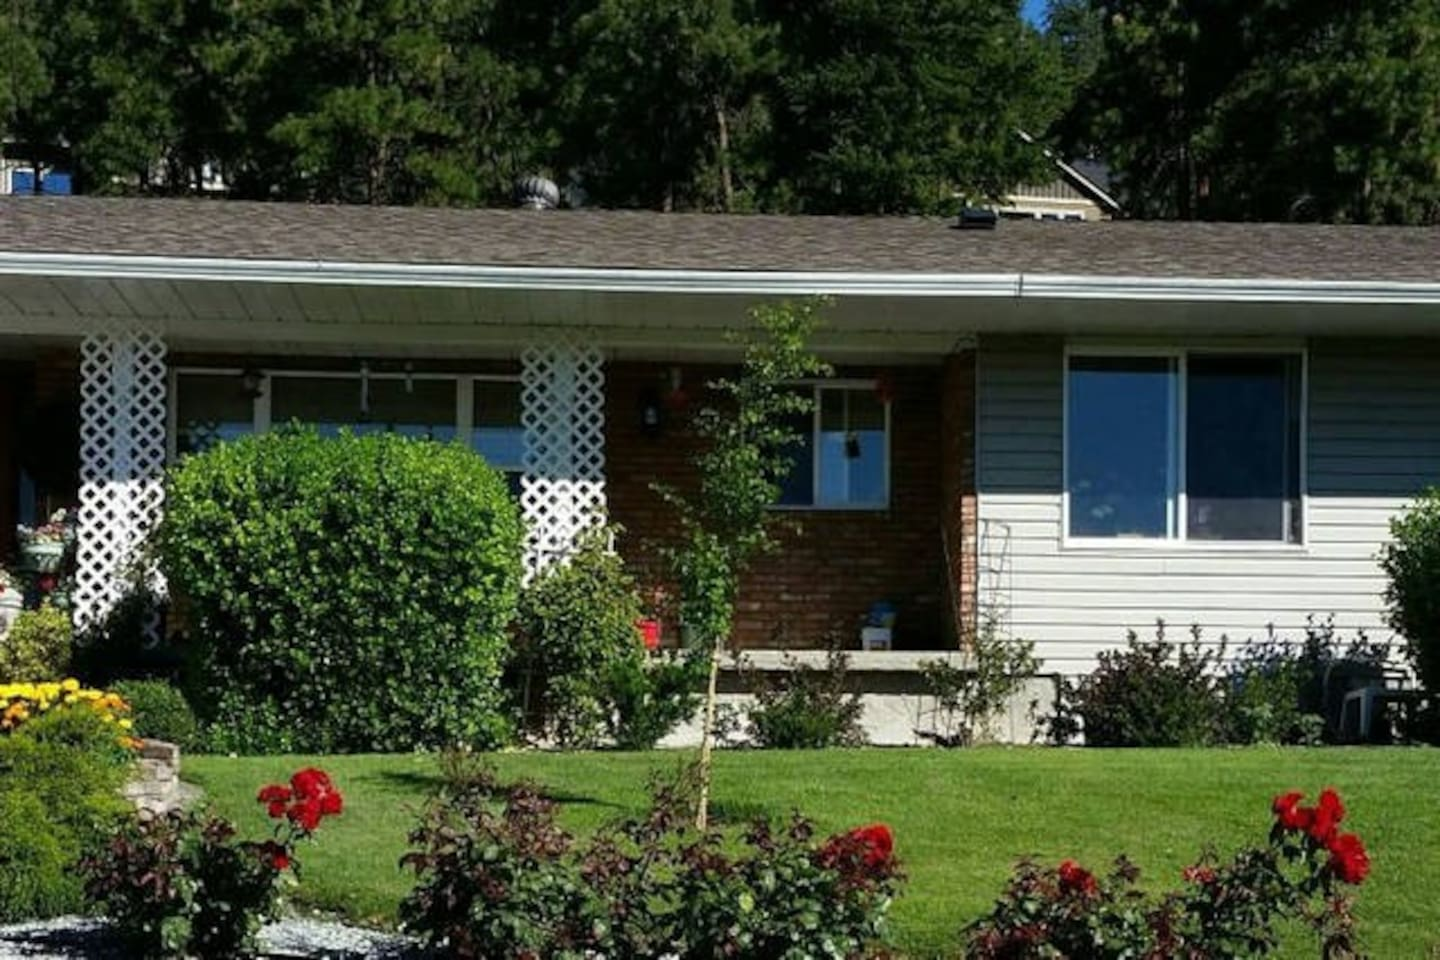 Our home at 150 Portview Avenue, Kelowna, B.C.